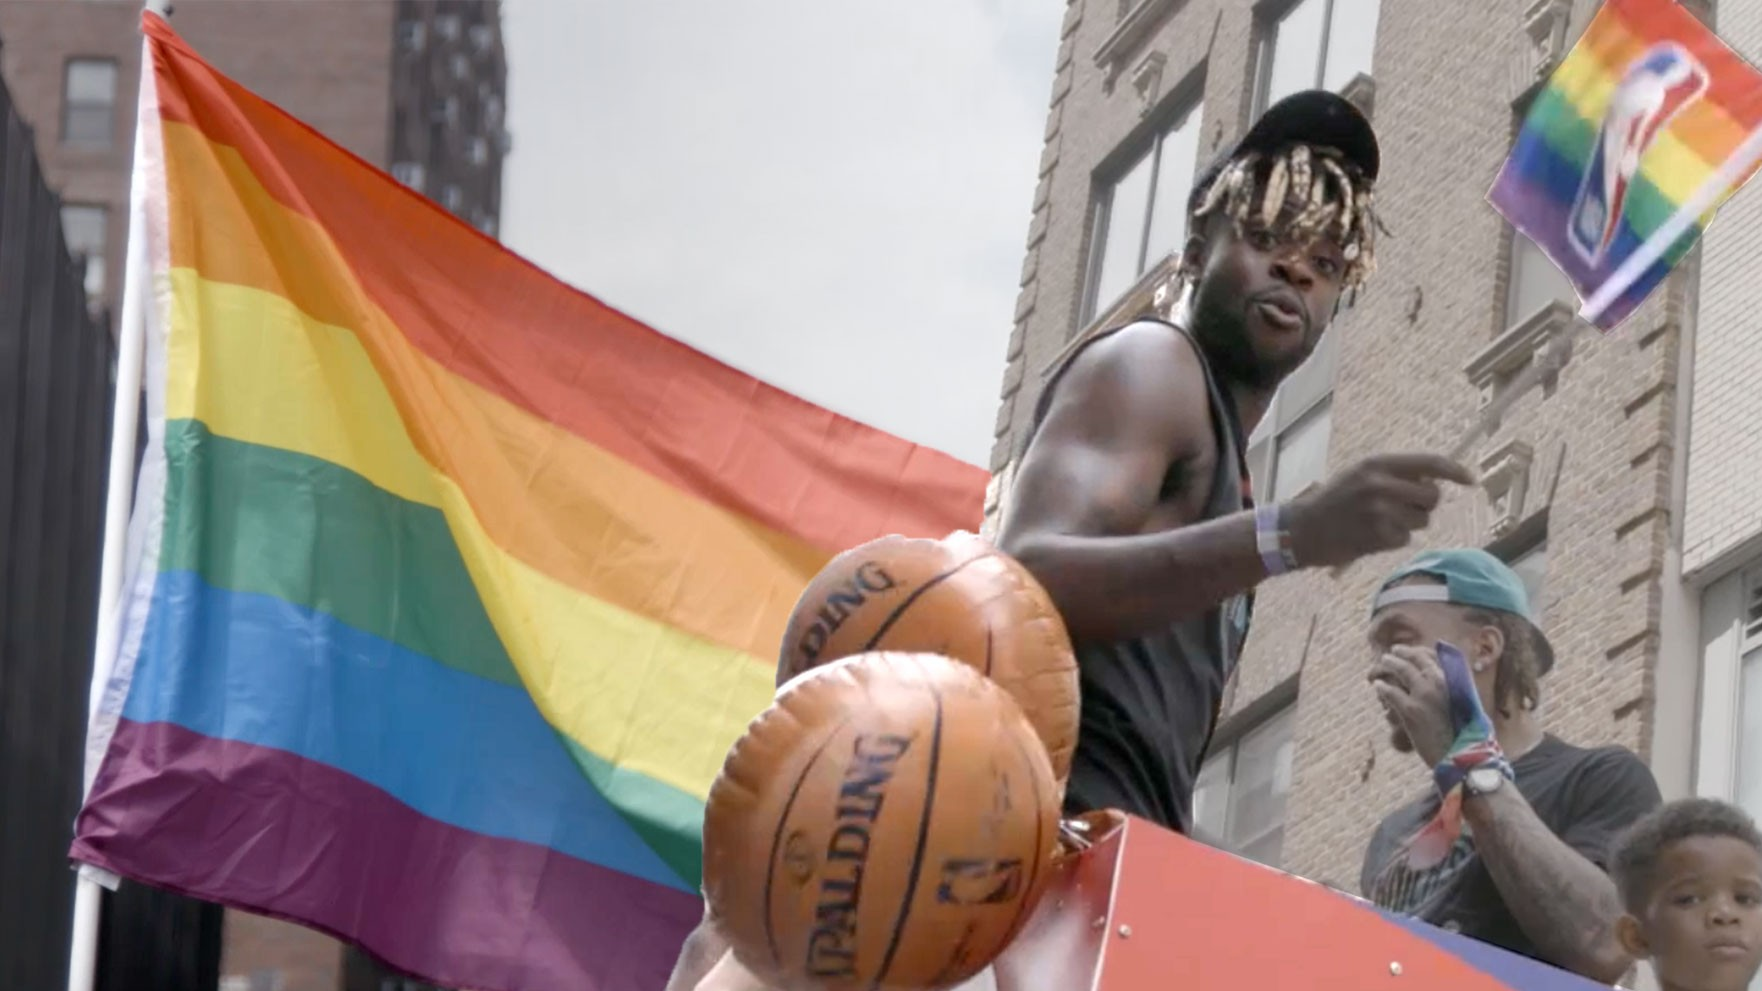 The NBA Player Fighting for LGBT Equality